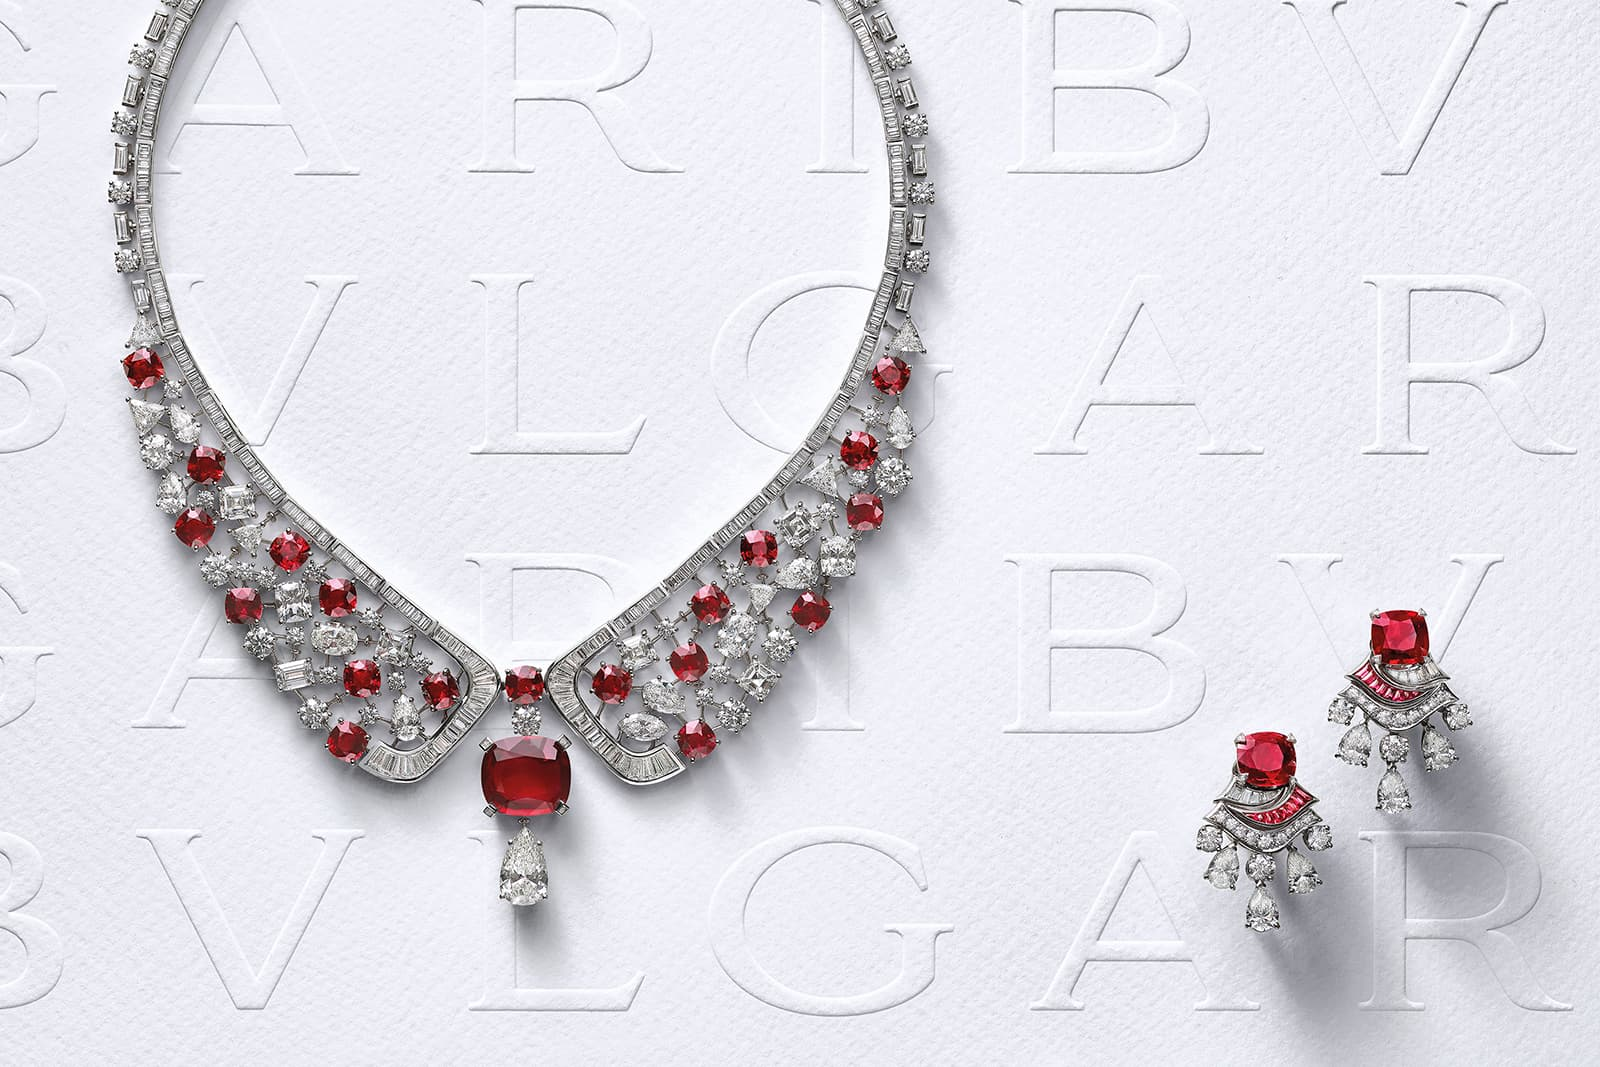 Bulgari's Forever Rubies necklace and earrings. The necklace is set with a rare 10.04 Mozambique ruby accompanied by a spectacular set of 20 vivid red rubies